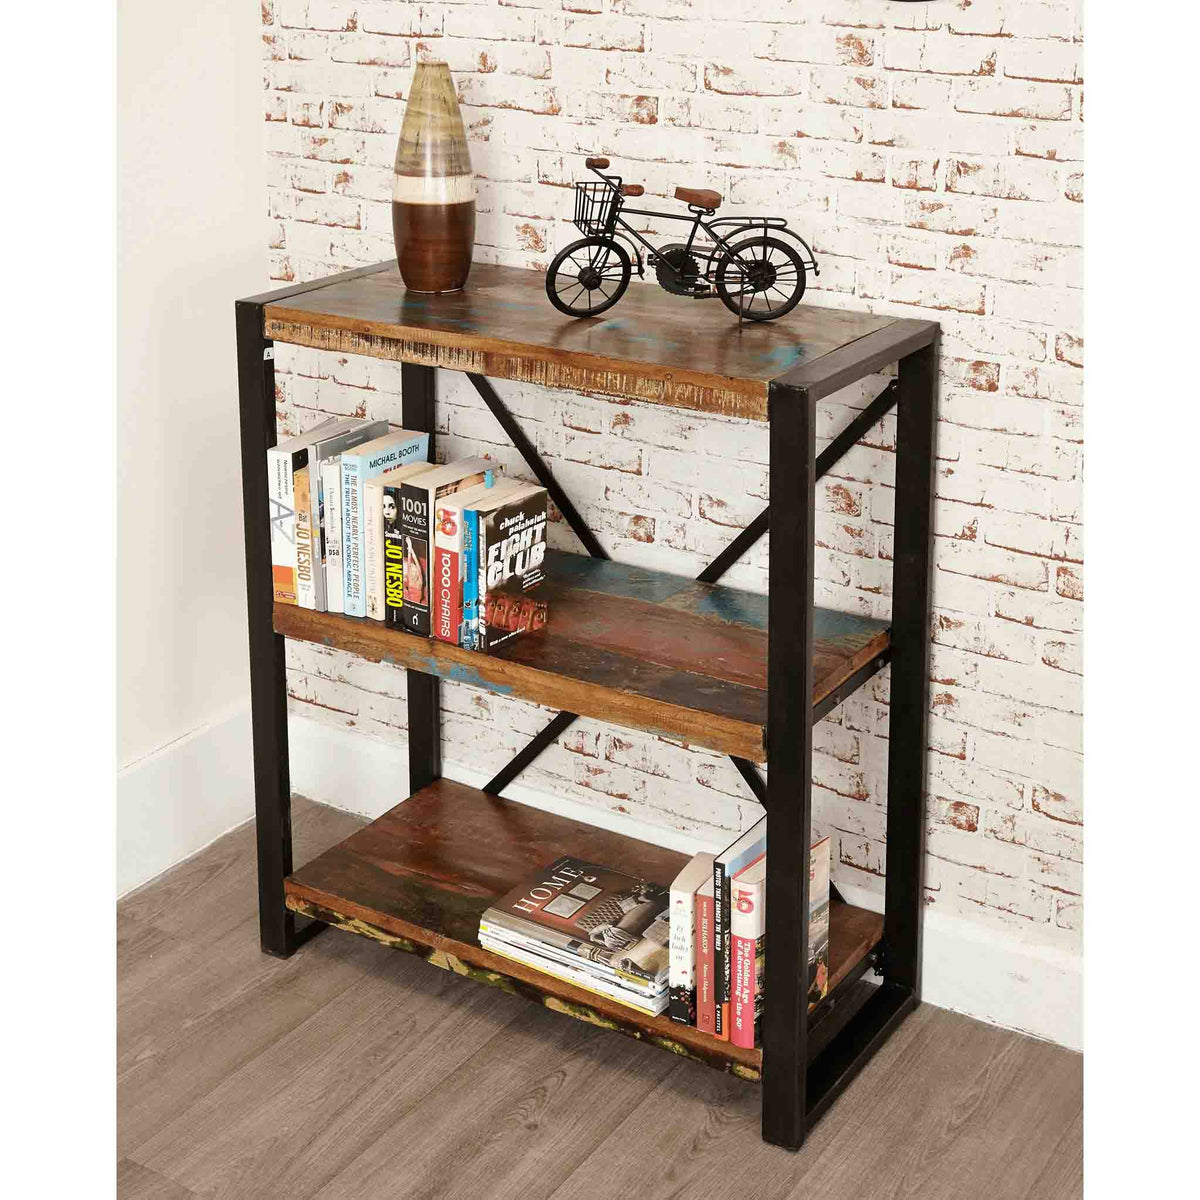 The Urban Chic Industrial Reclaimed Wood Low Bookcase with 3 Shelves from Roseland Furniture